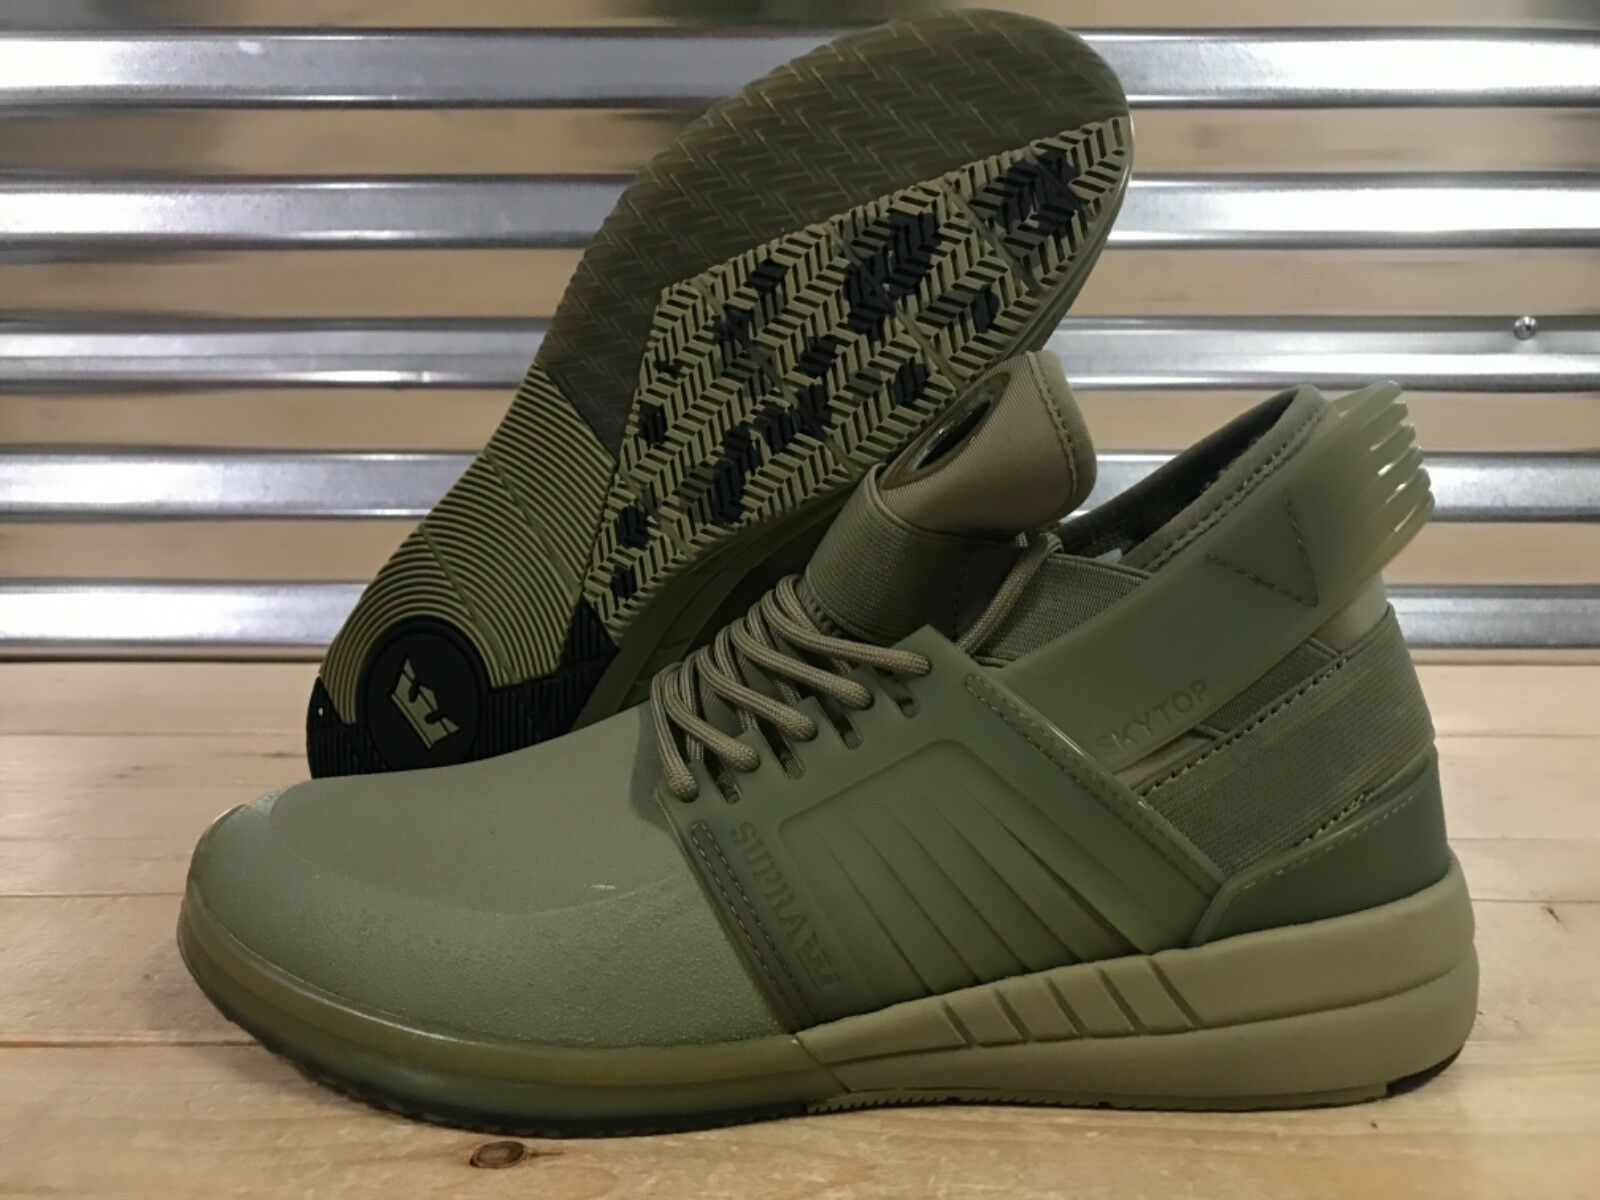 Supra V Skytop Sneakers shoes Mid Olive Green SZ ( 08032-353 ) NEW